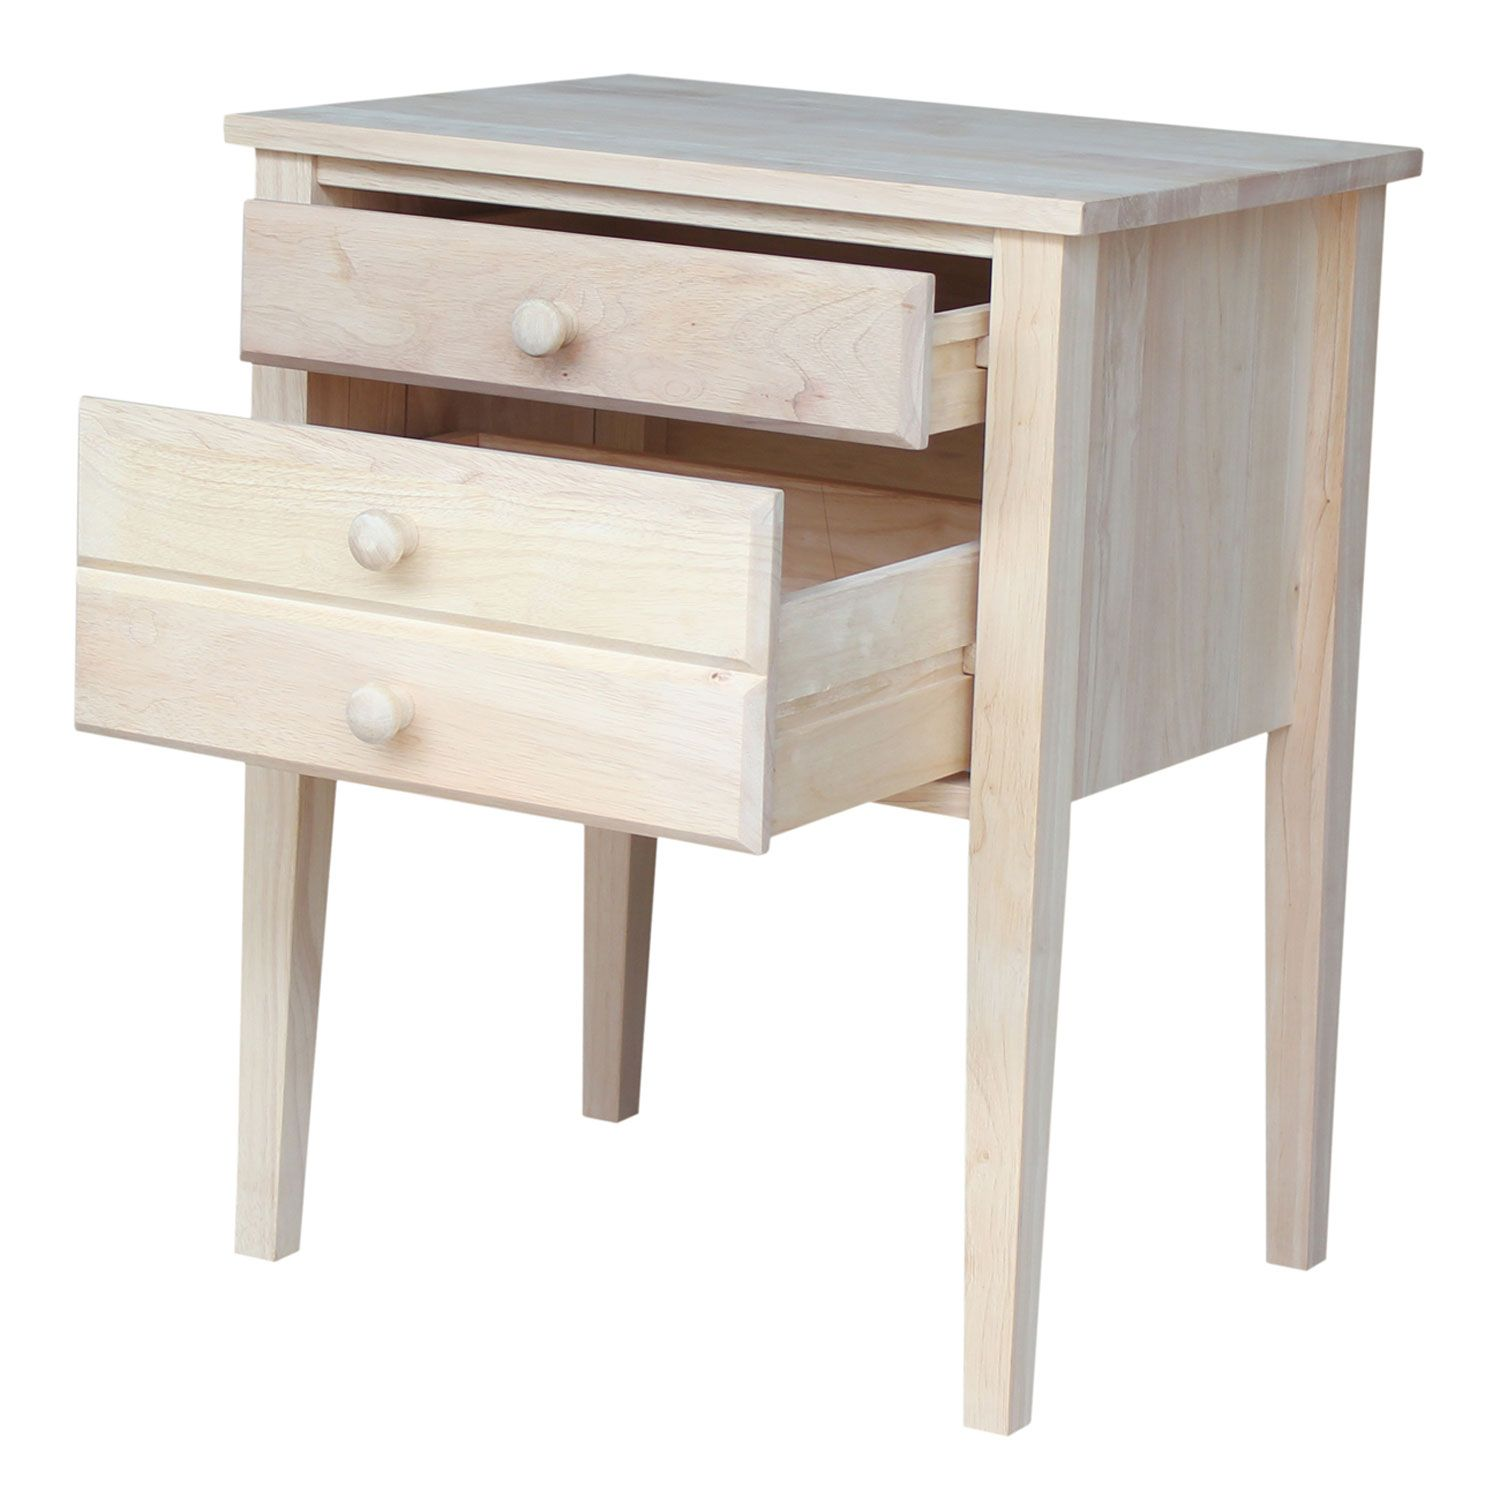 Beautiful Unfinished Accent Table With Drawers Design Ideas